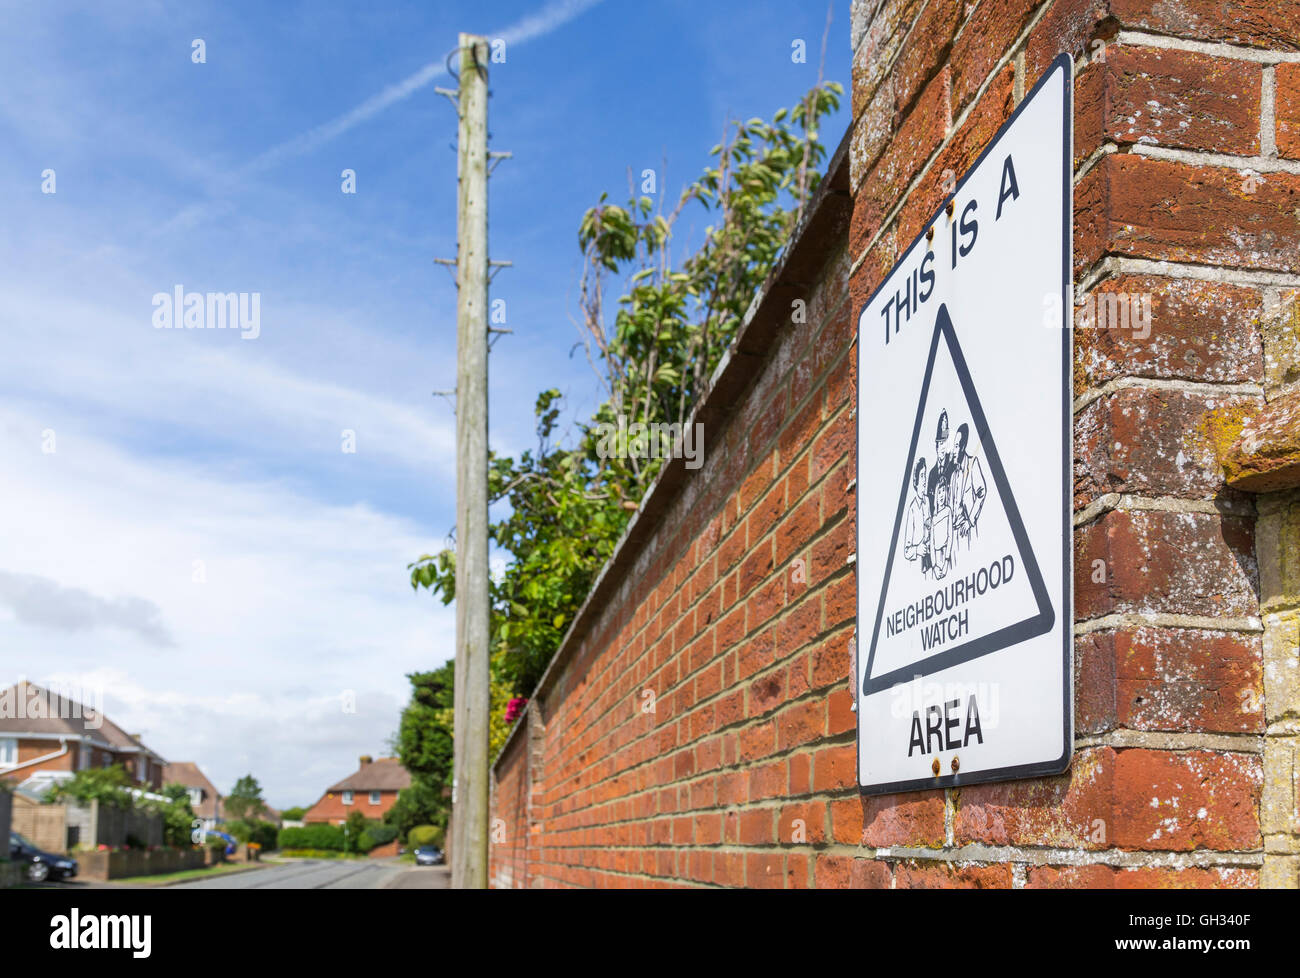 Neighbourhood Watch sign on a small road in the UK. - Stock Image